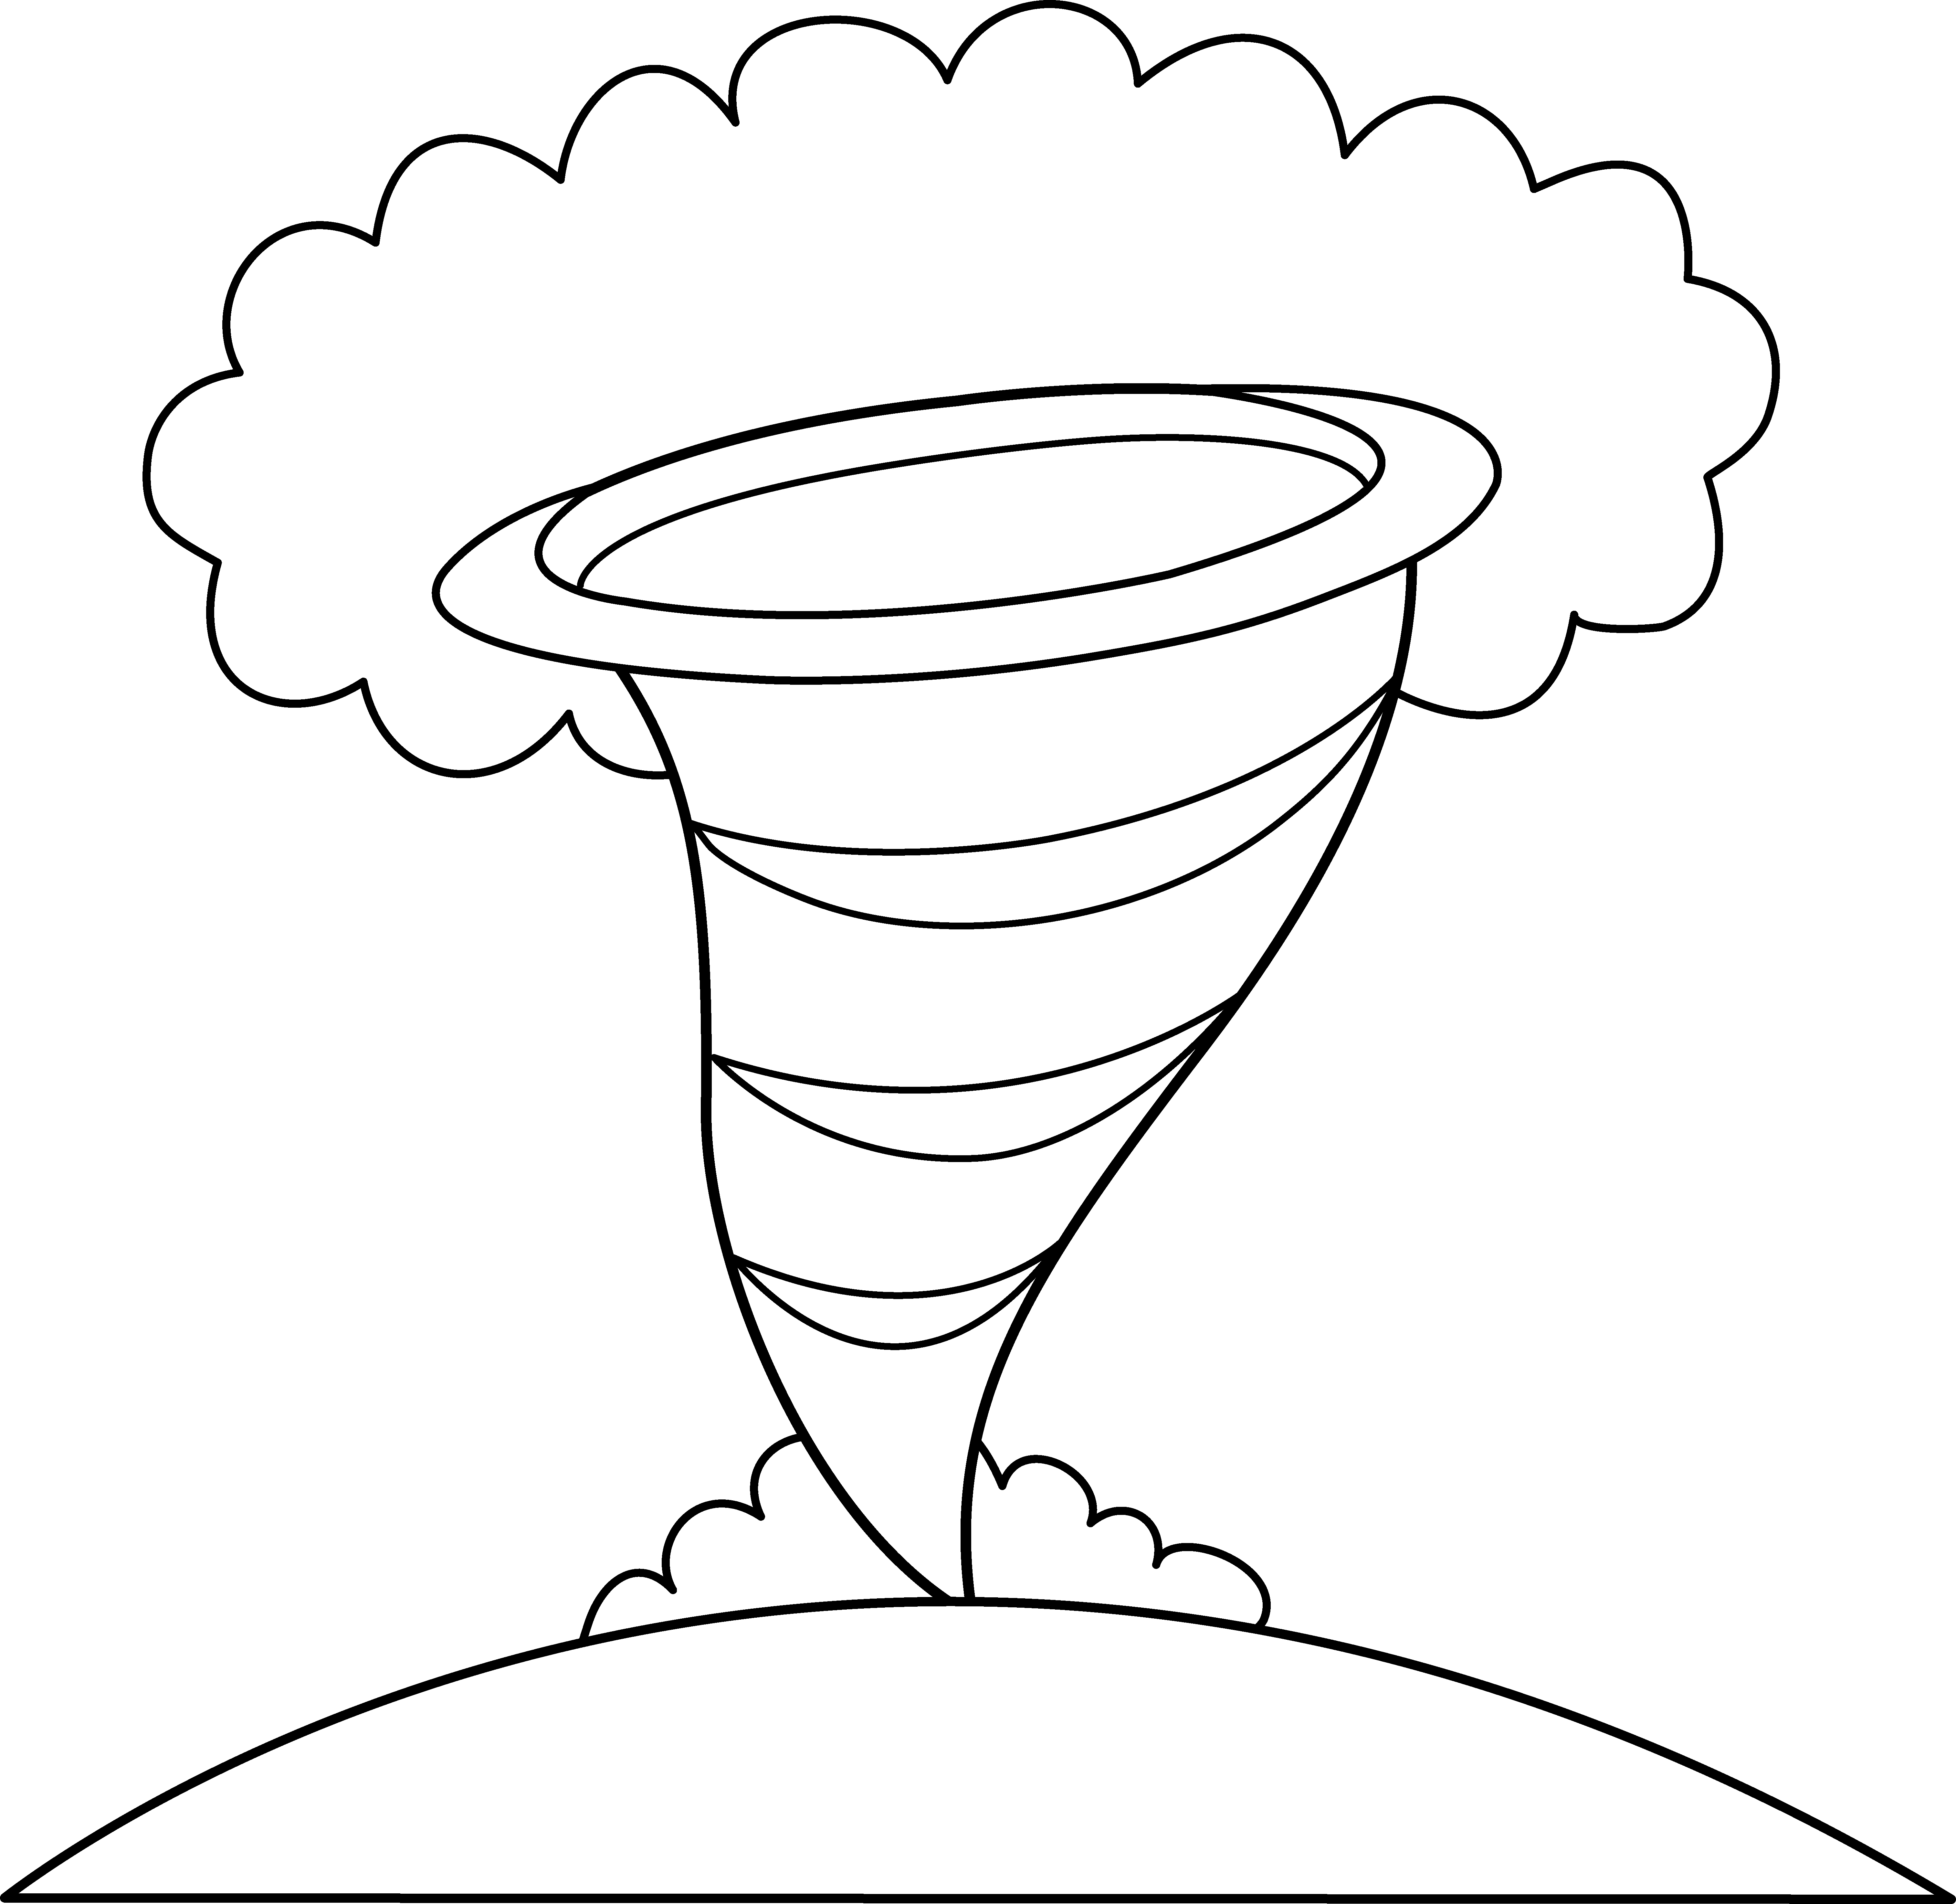 tornado coloring pages printable | Tornado coloring pages to download and print for free